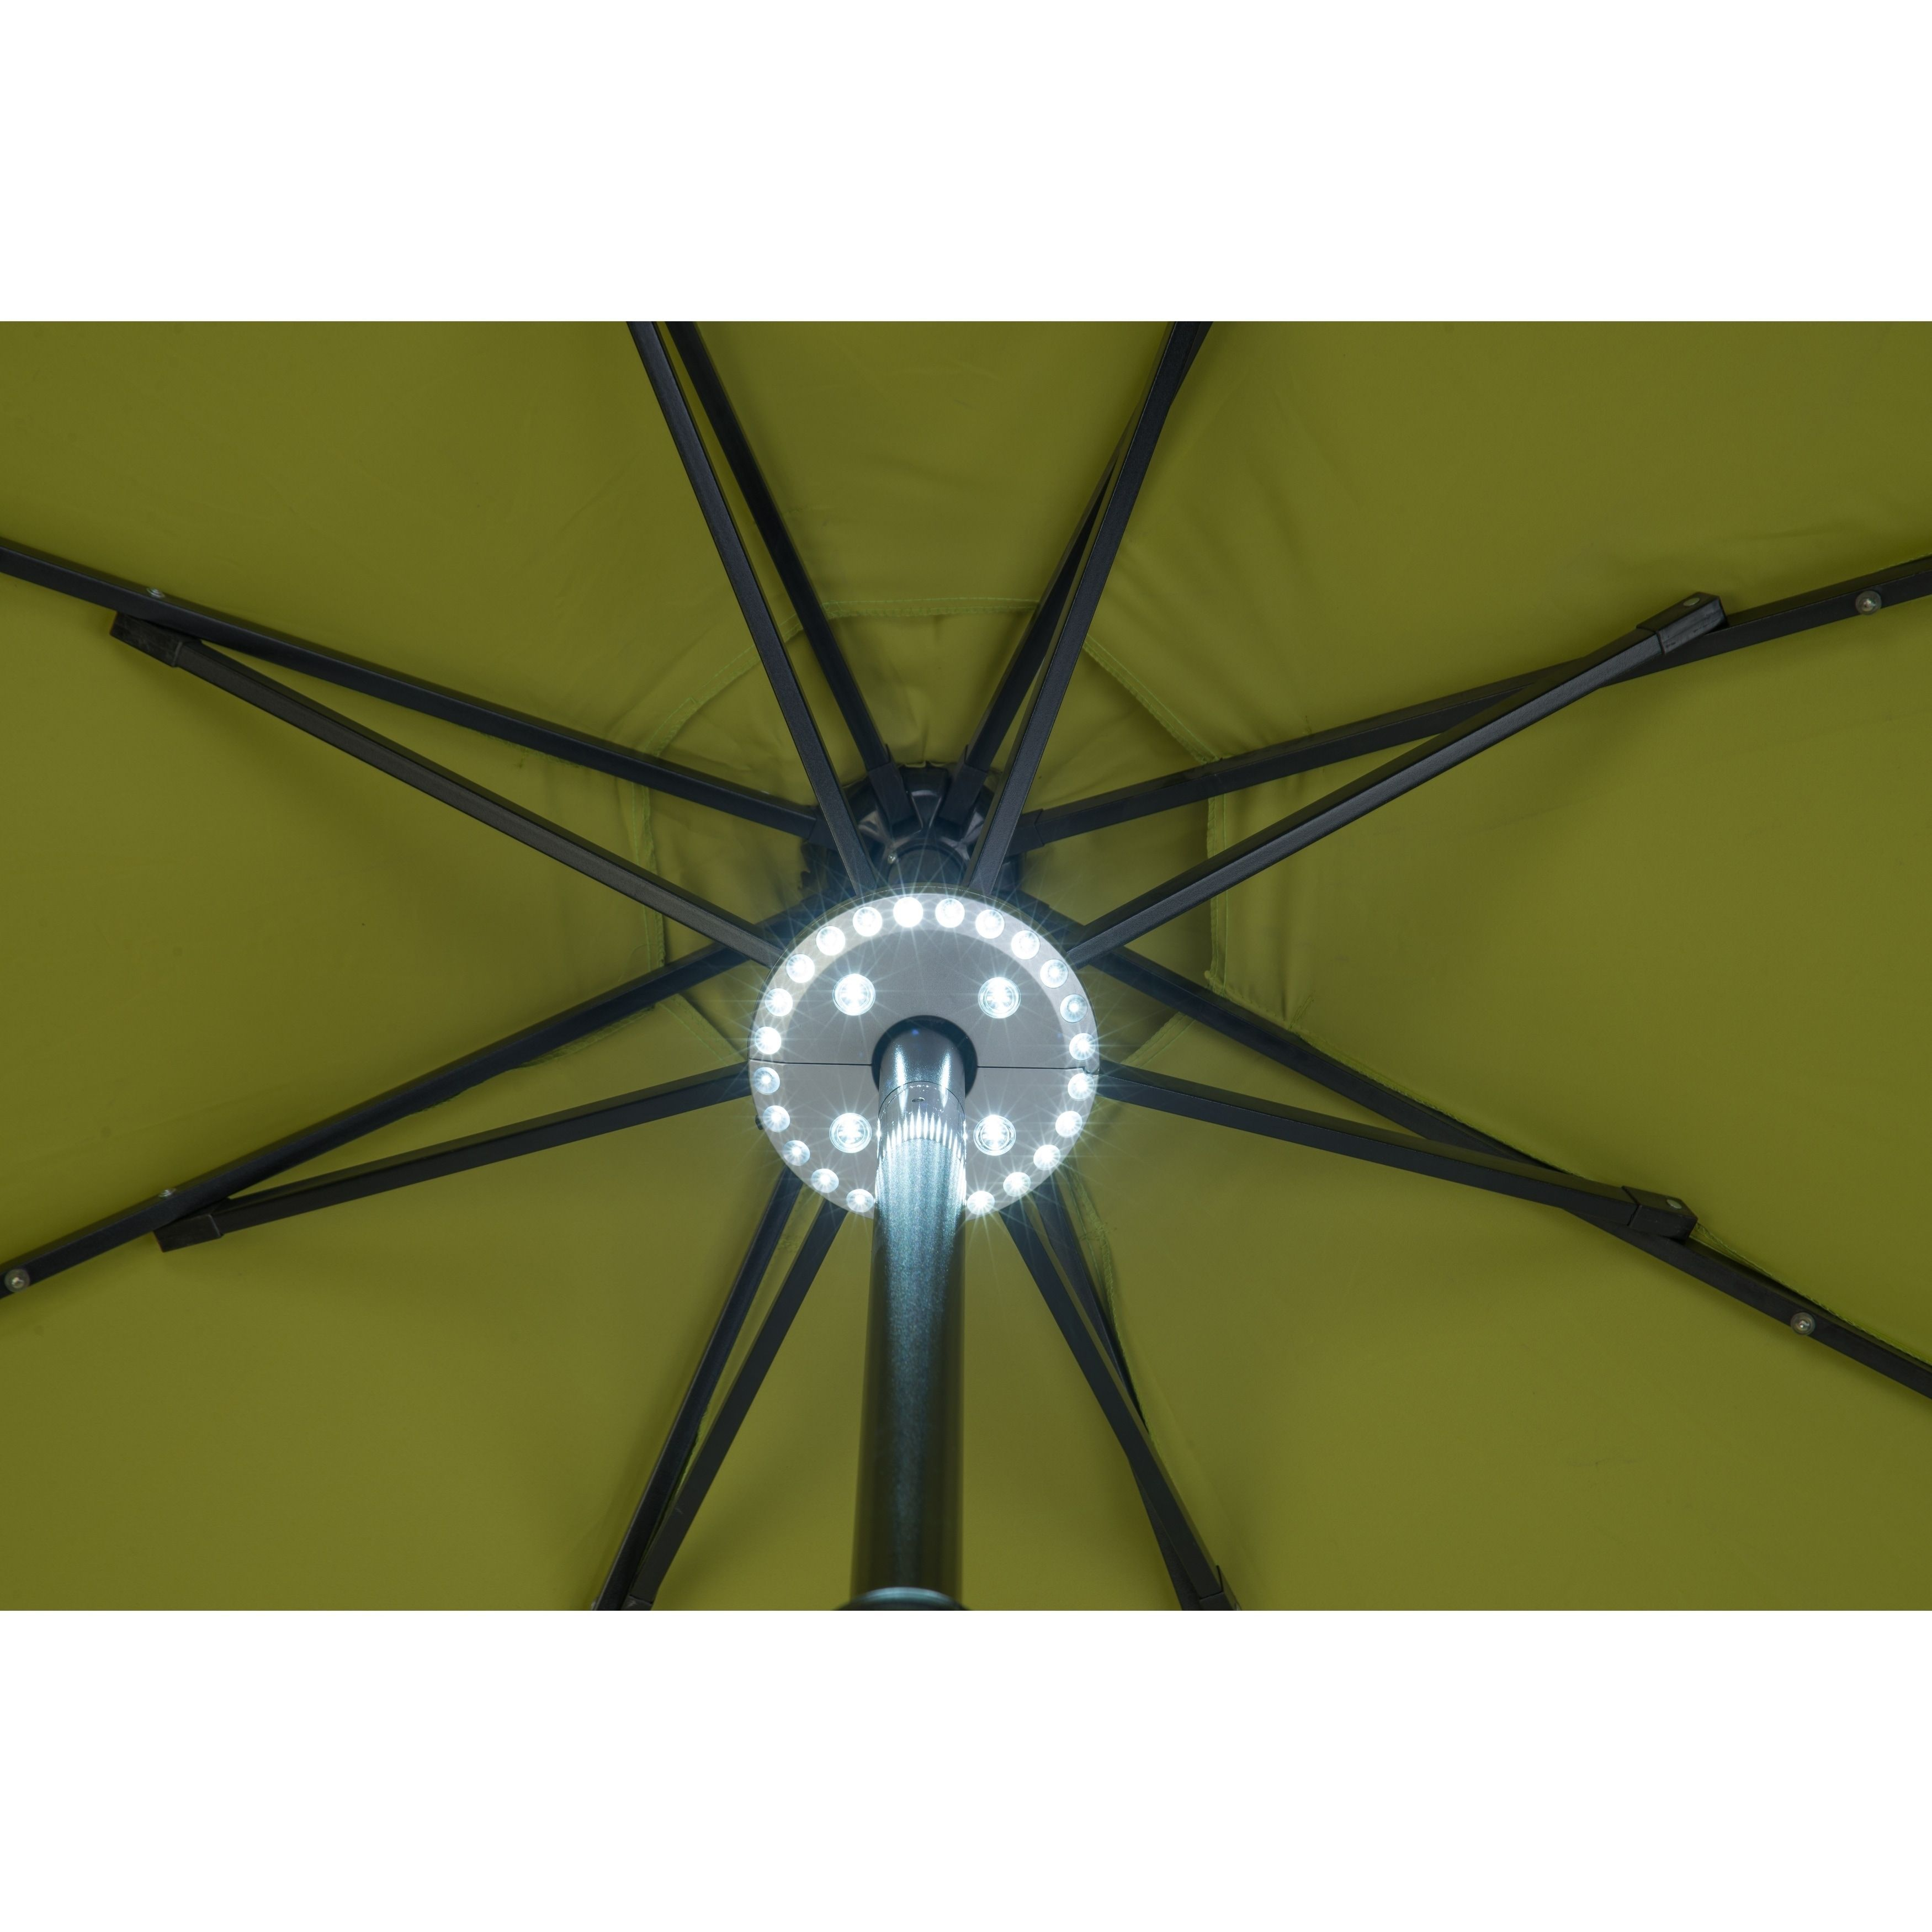 28 LED Patio Umbrella Light 3 Level Dimming by Trademark